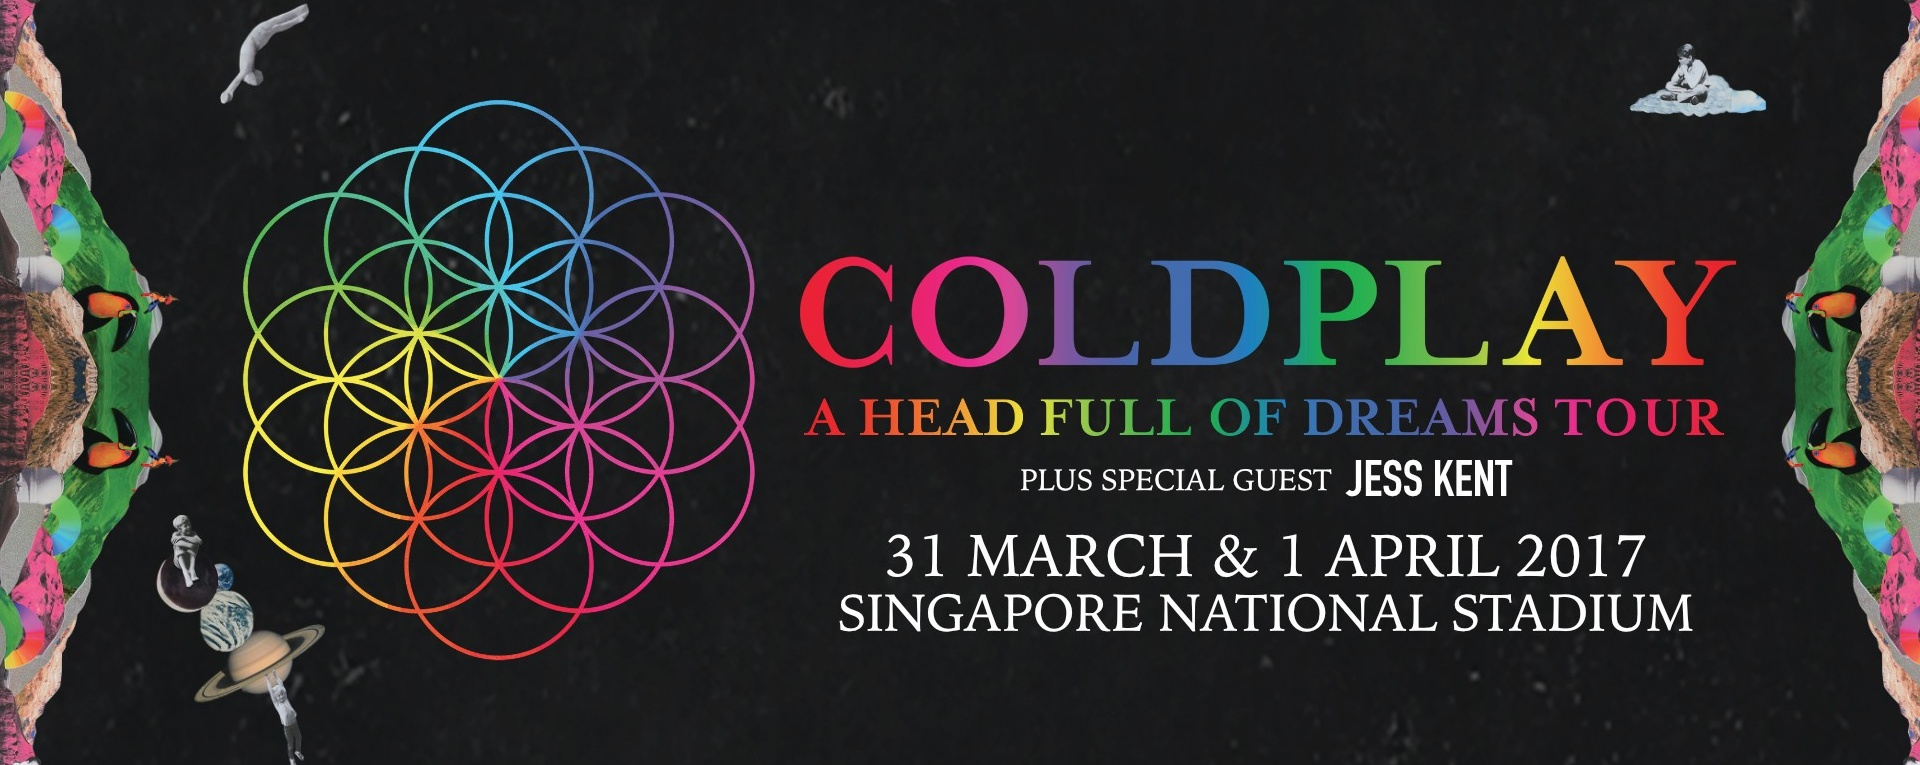 Coldplay - A Head Full of Dreams Tour (Singapore)